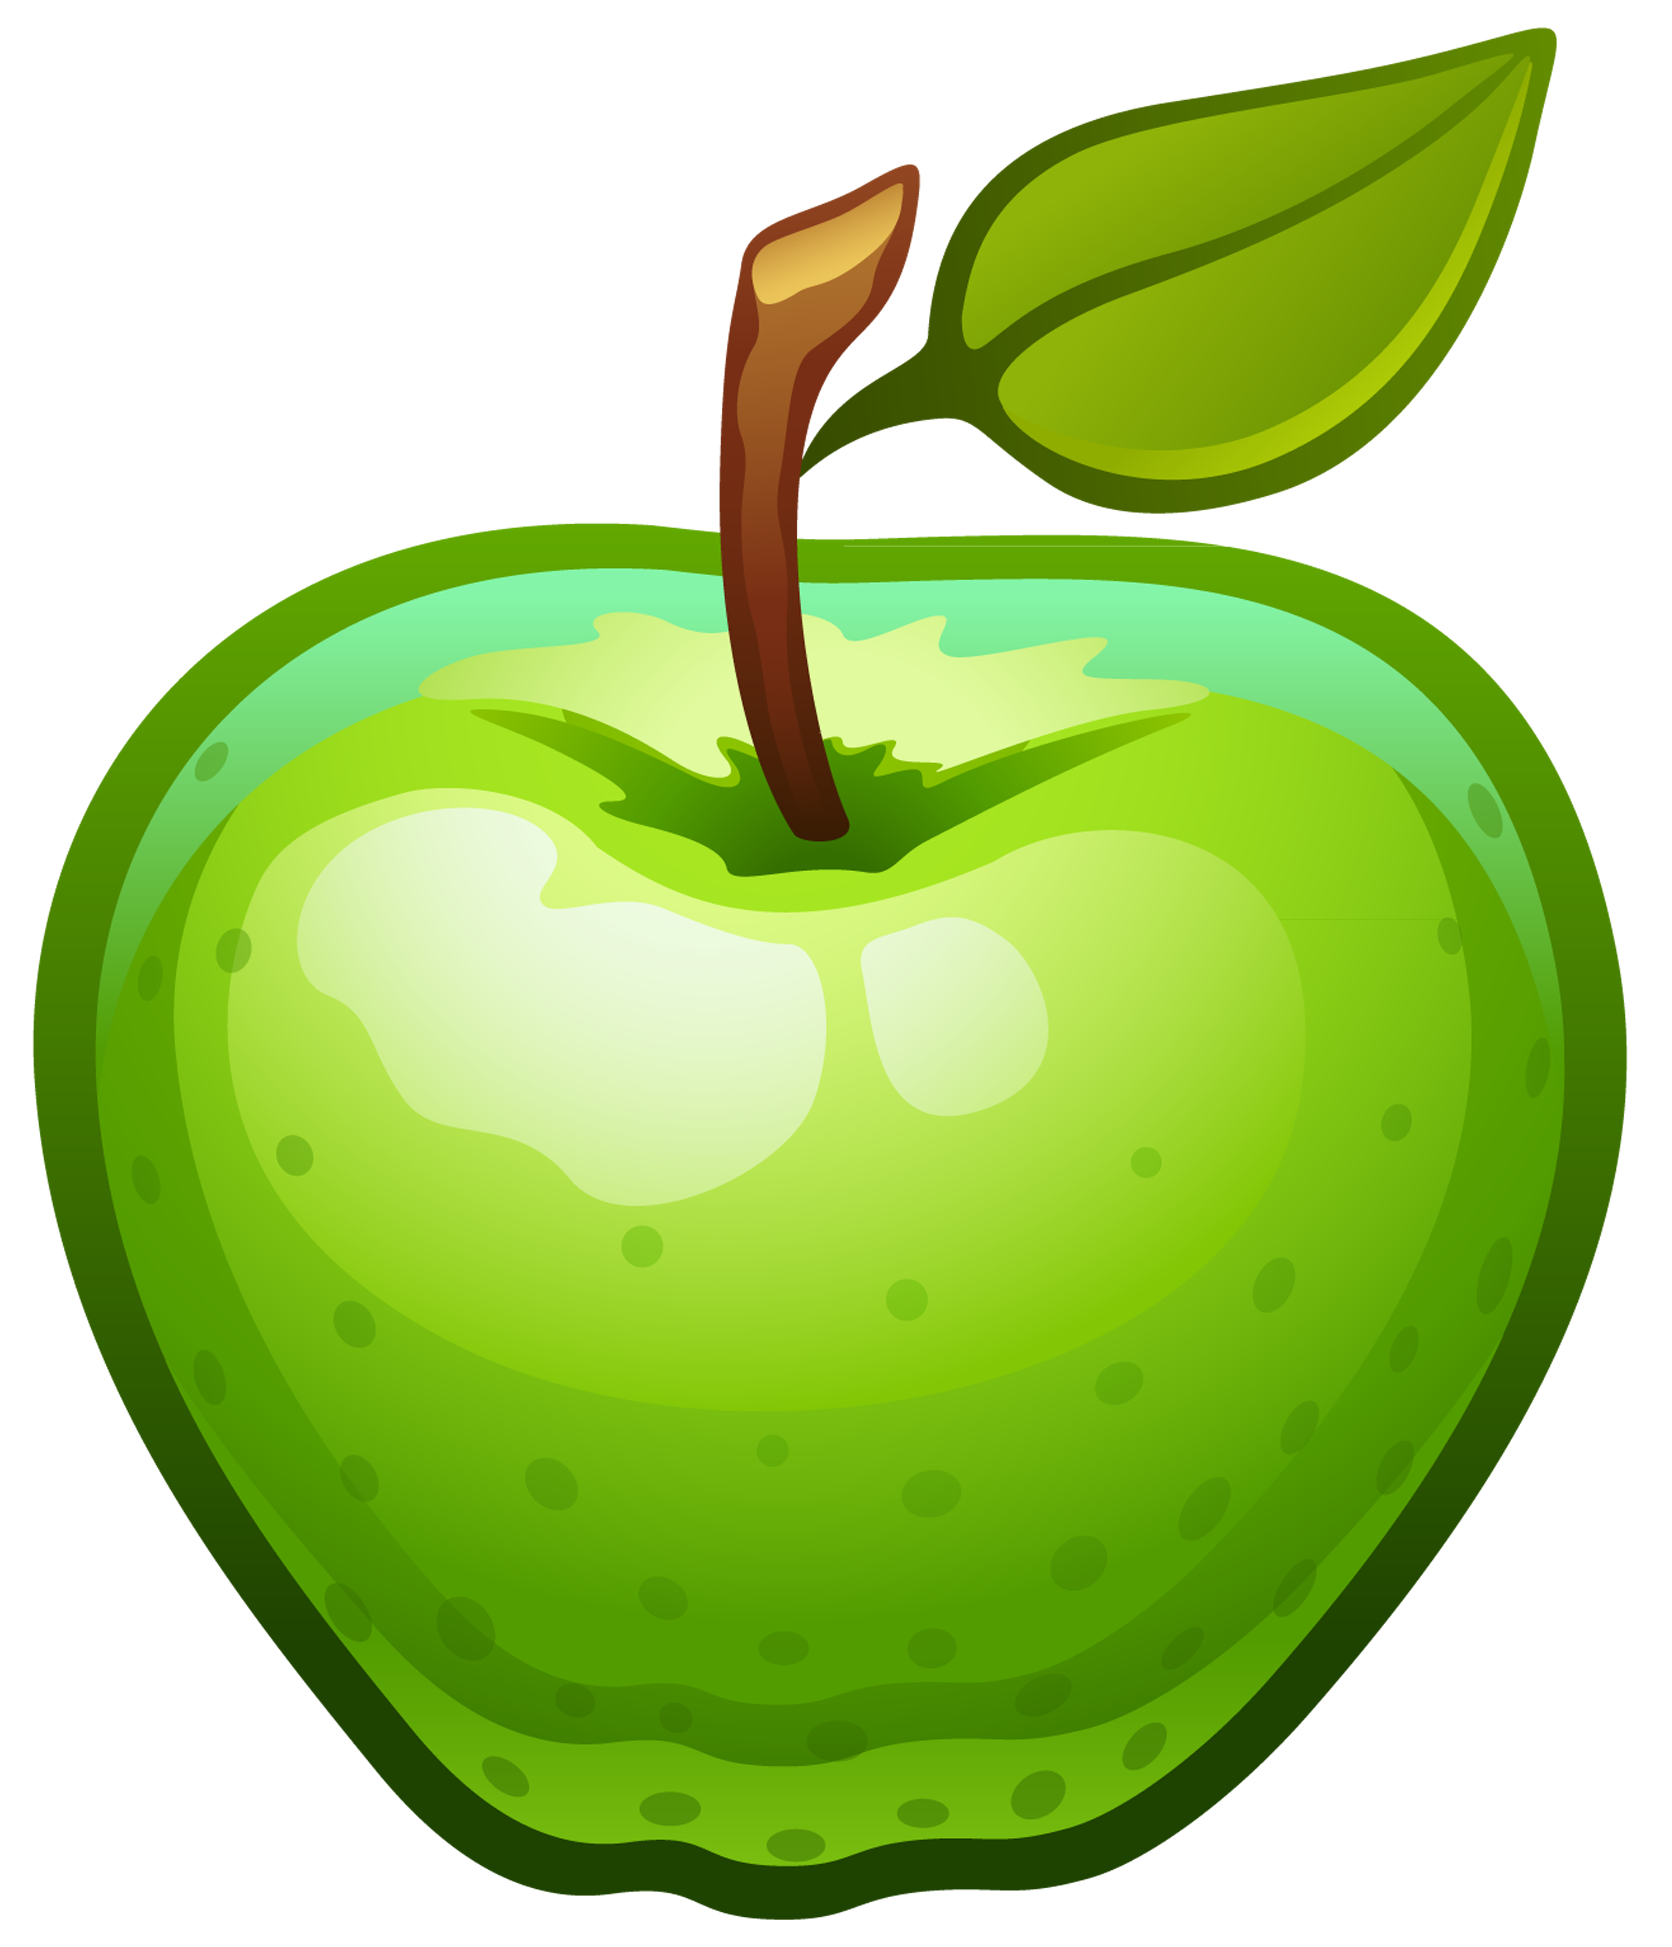 Solid green apple clipart banner freeuse library Large Painted Green Apple PNG Clipart | Gallery Yopriceville - High ... banner freeuse library